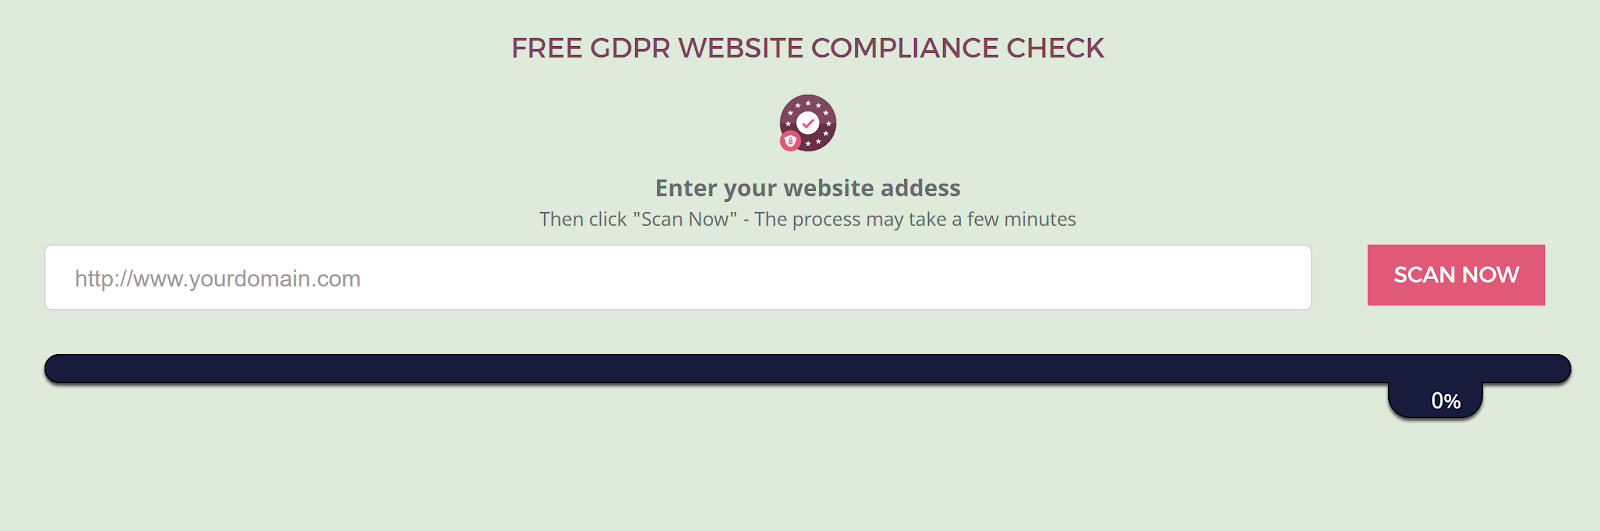 ezigdpr GDPR compliance checker